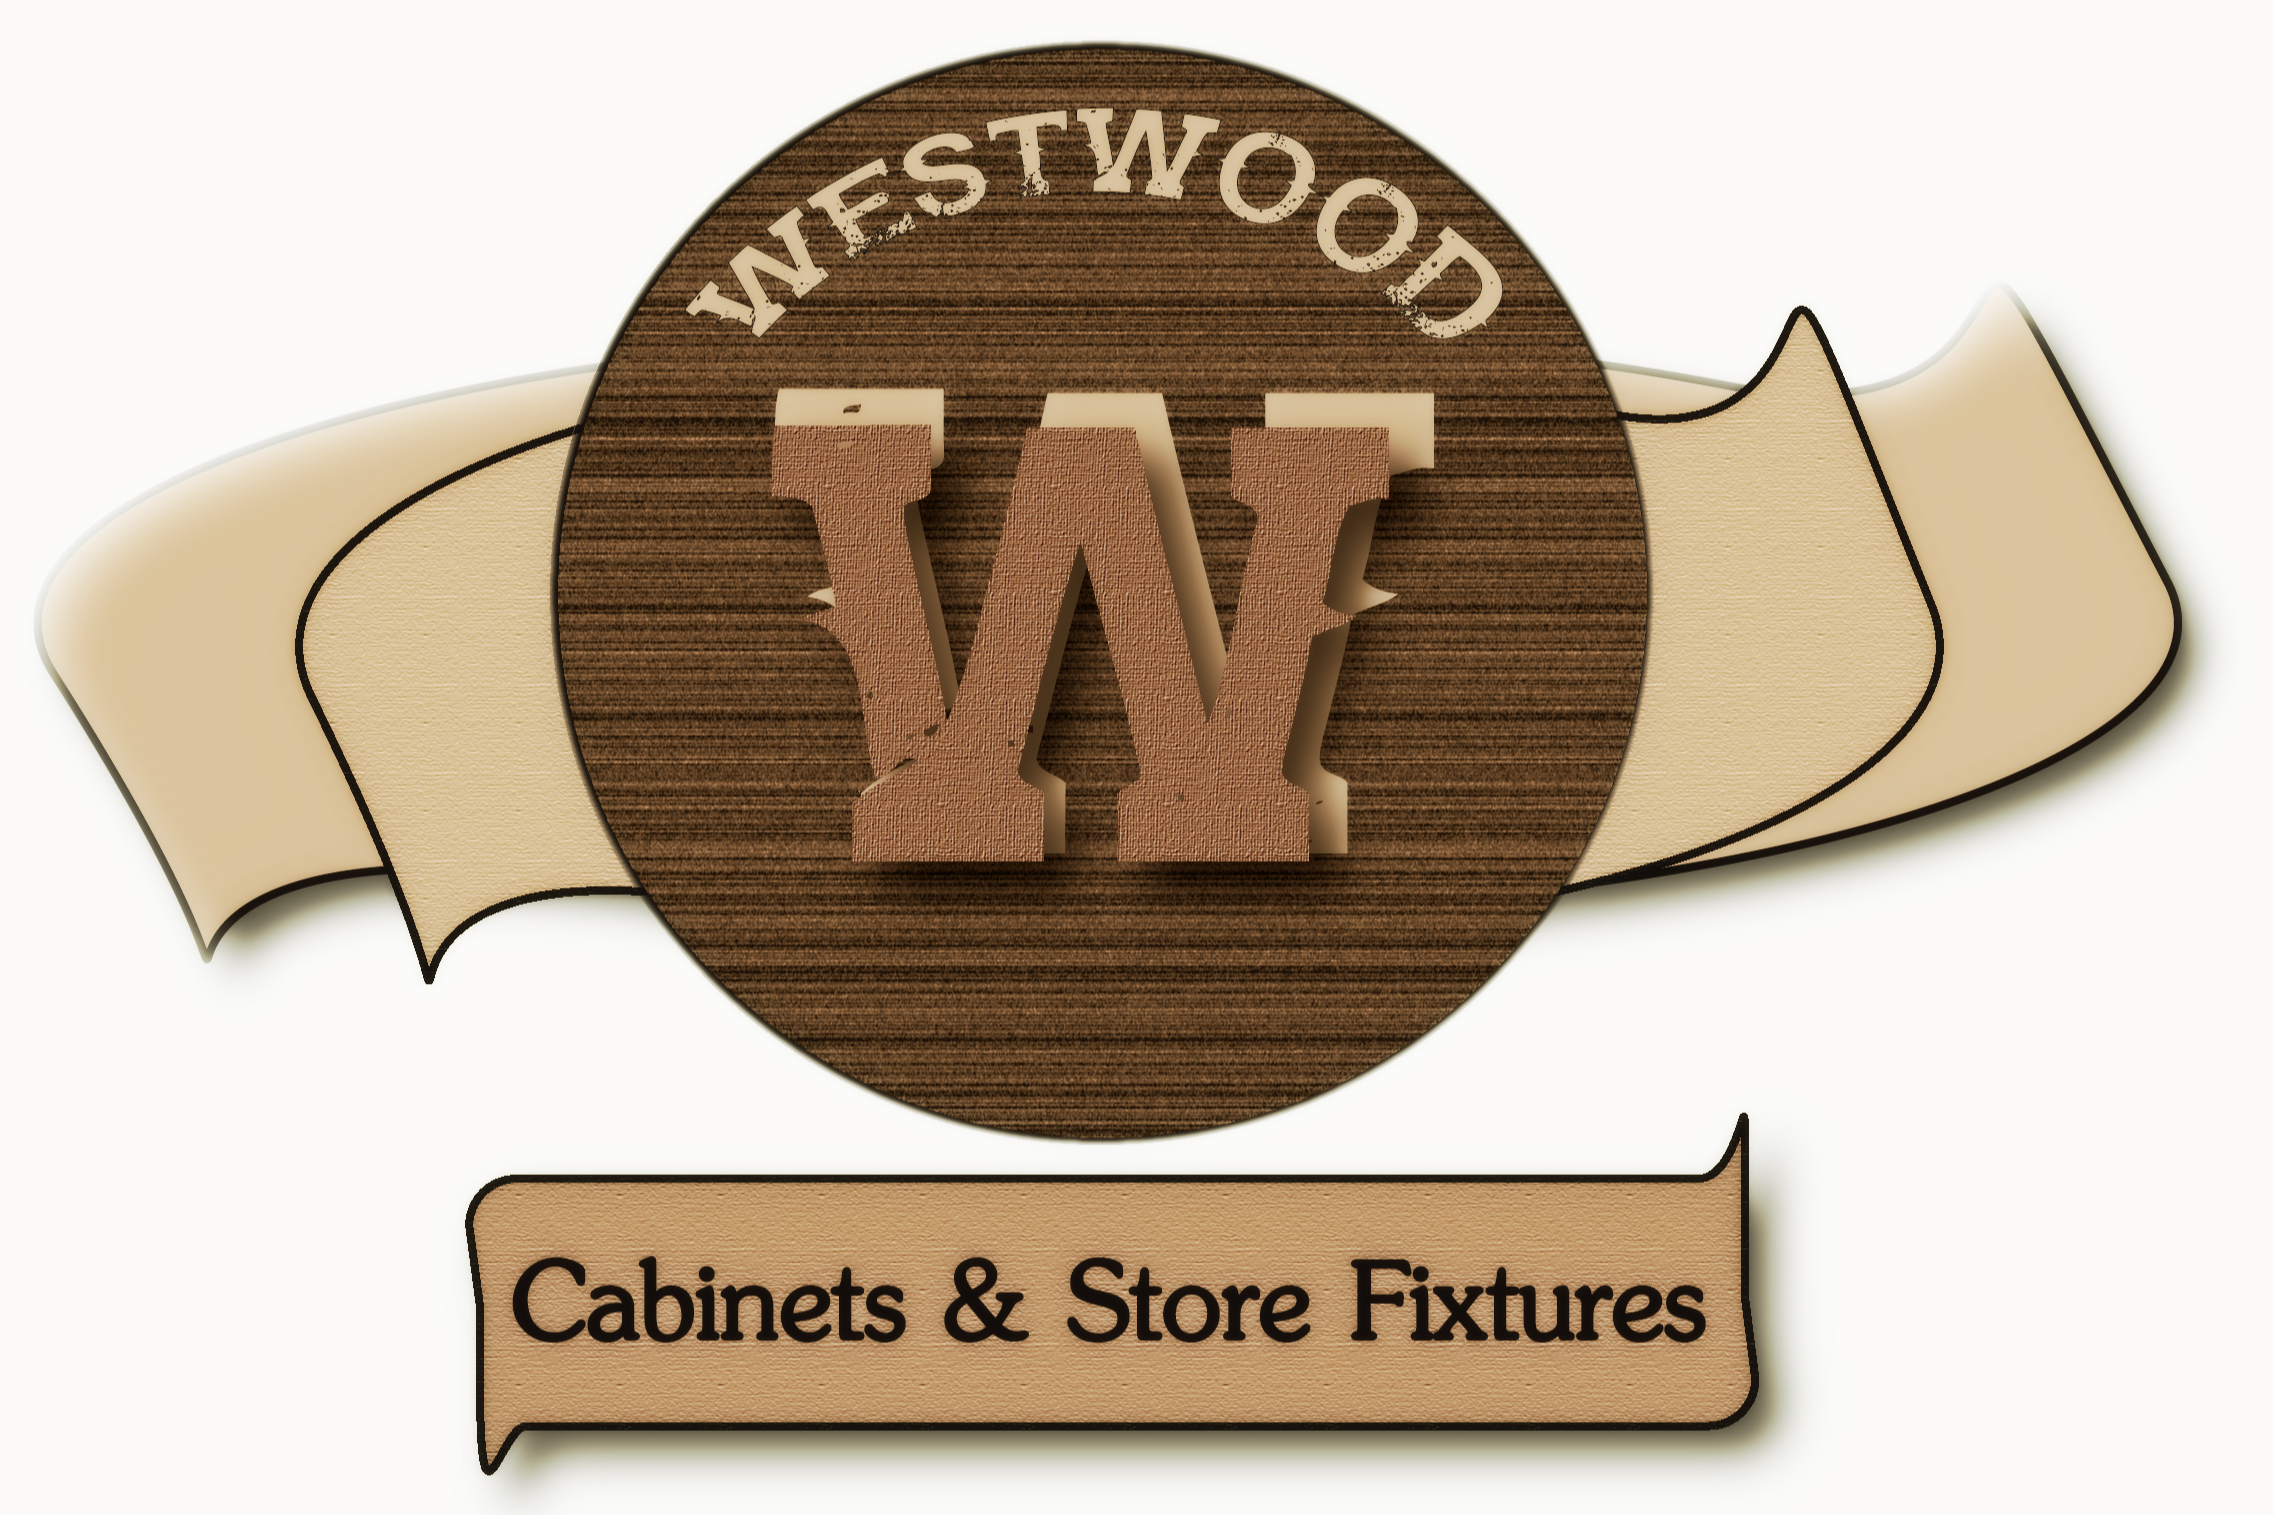 West Wood Cabinets Logo